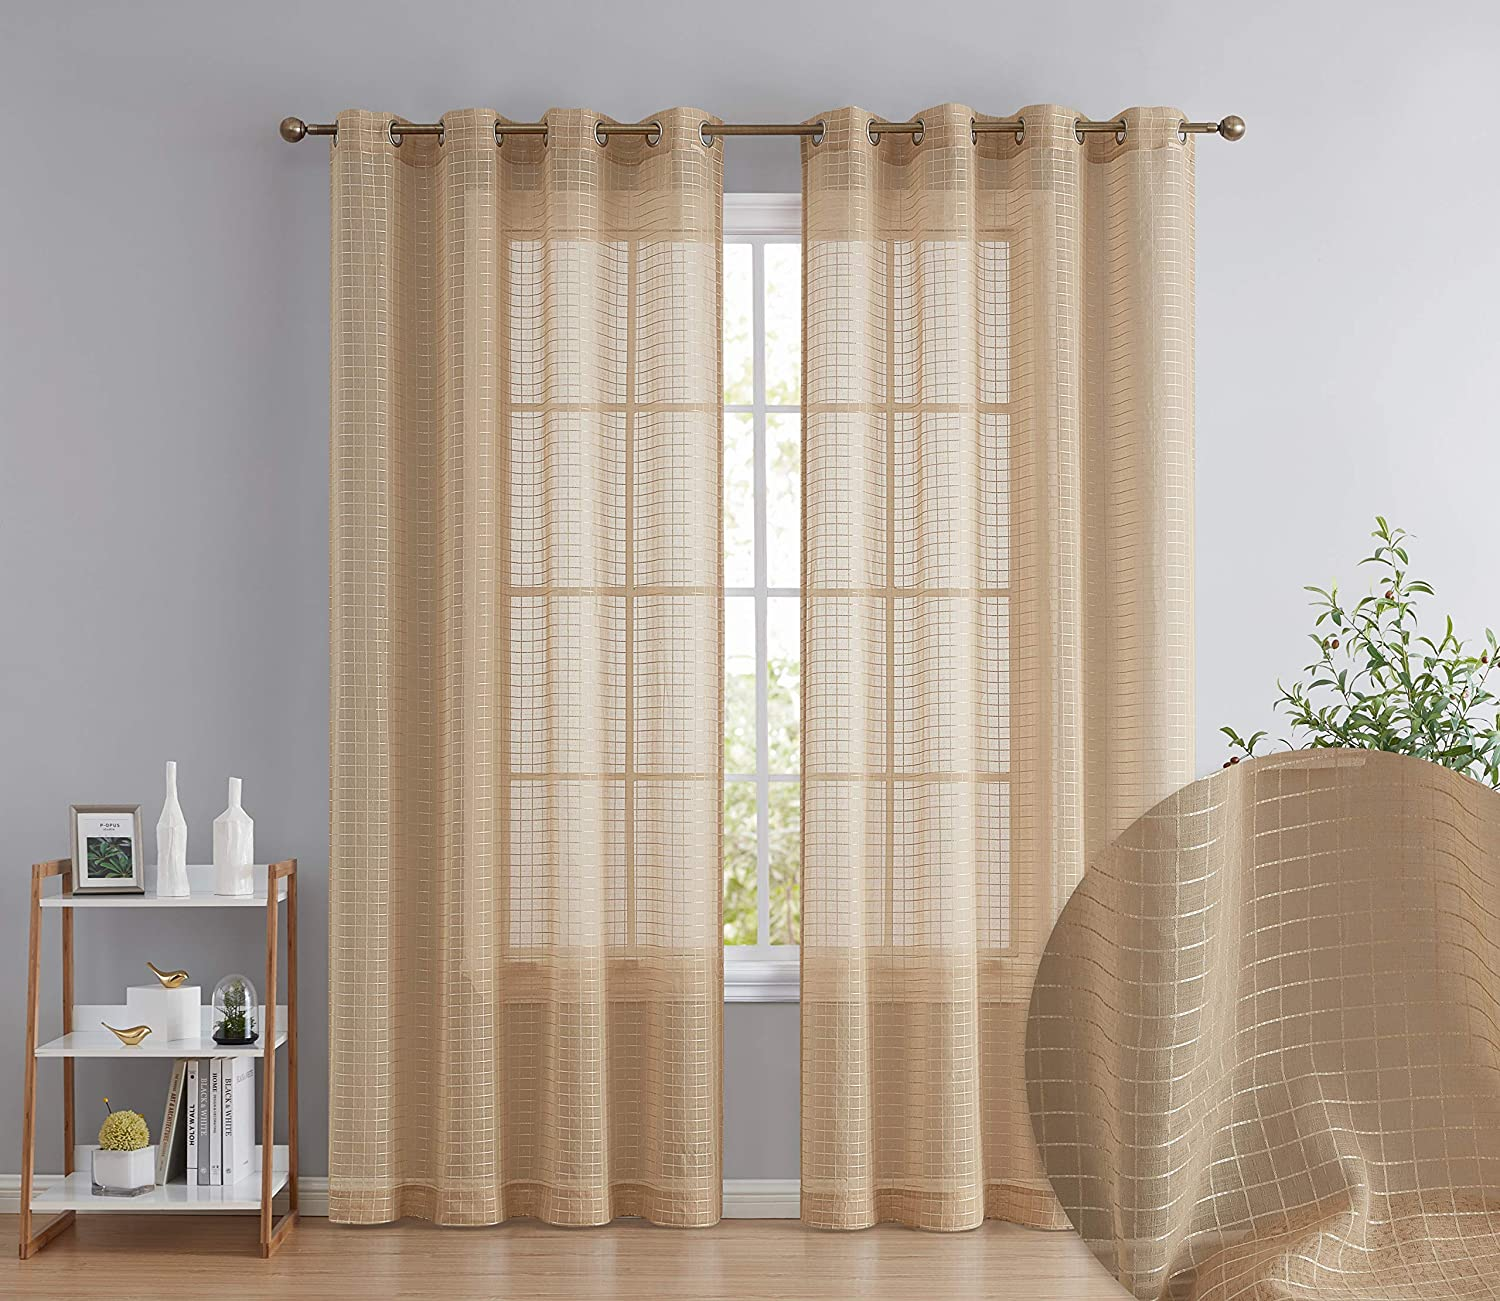 HLC.ME Buffalo Check Gingham Pattern Light Filtering Semi Sheer Voile Window Curtain Grommet Panels for Small Windows - Perfect for Bathroom & Kitchen - Set of 2 (Taupe, 54